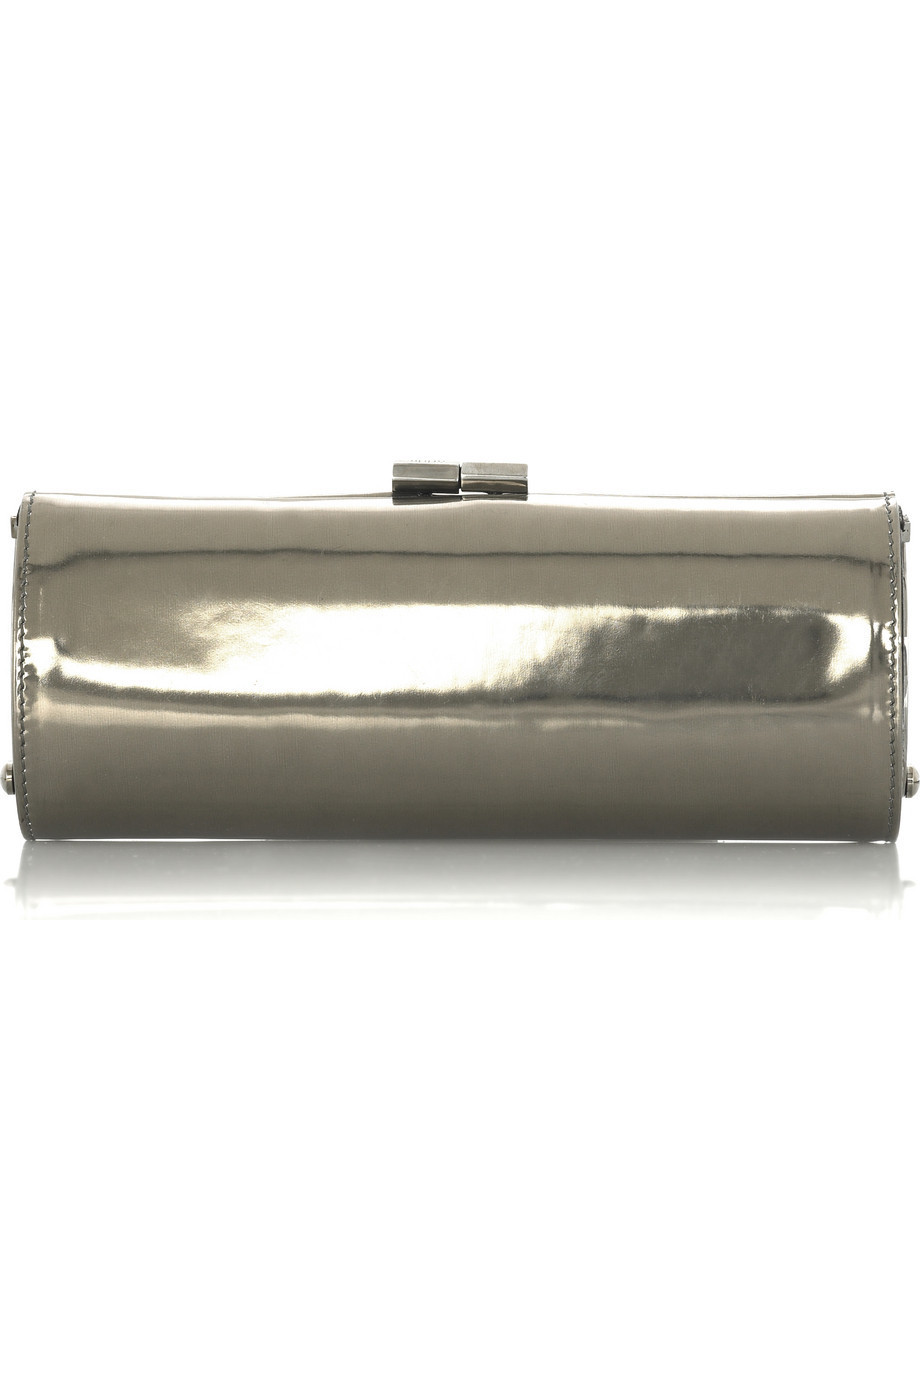 Jimmy Choo Tube mirror clutch  | NET-A-PORTER.COM from net-a-porter.com